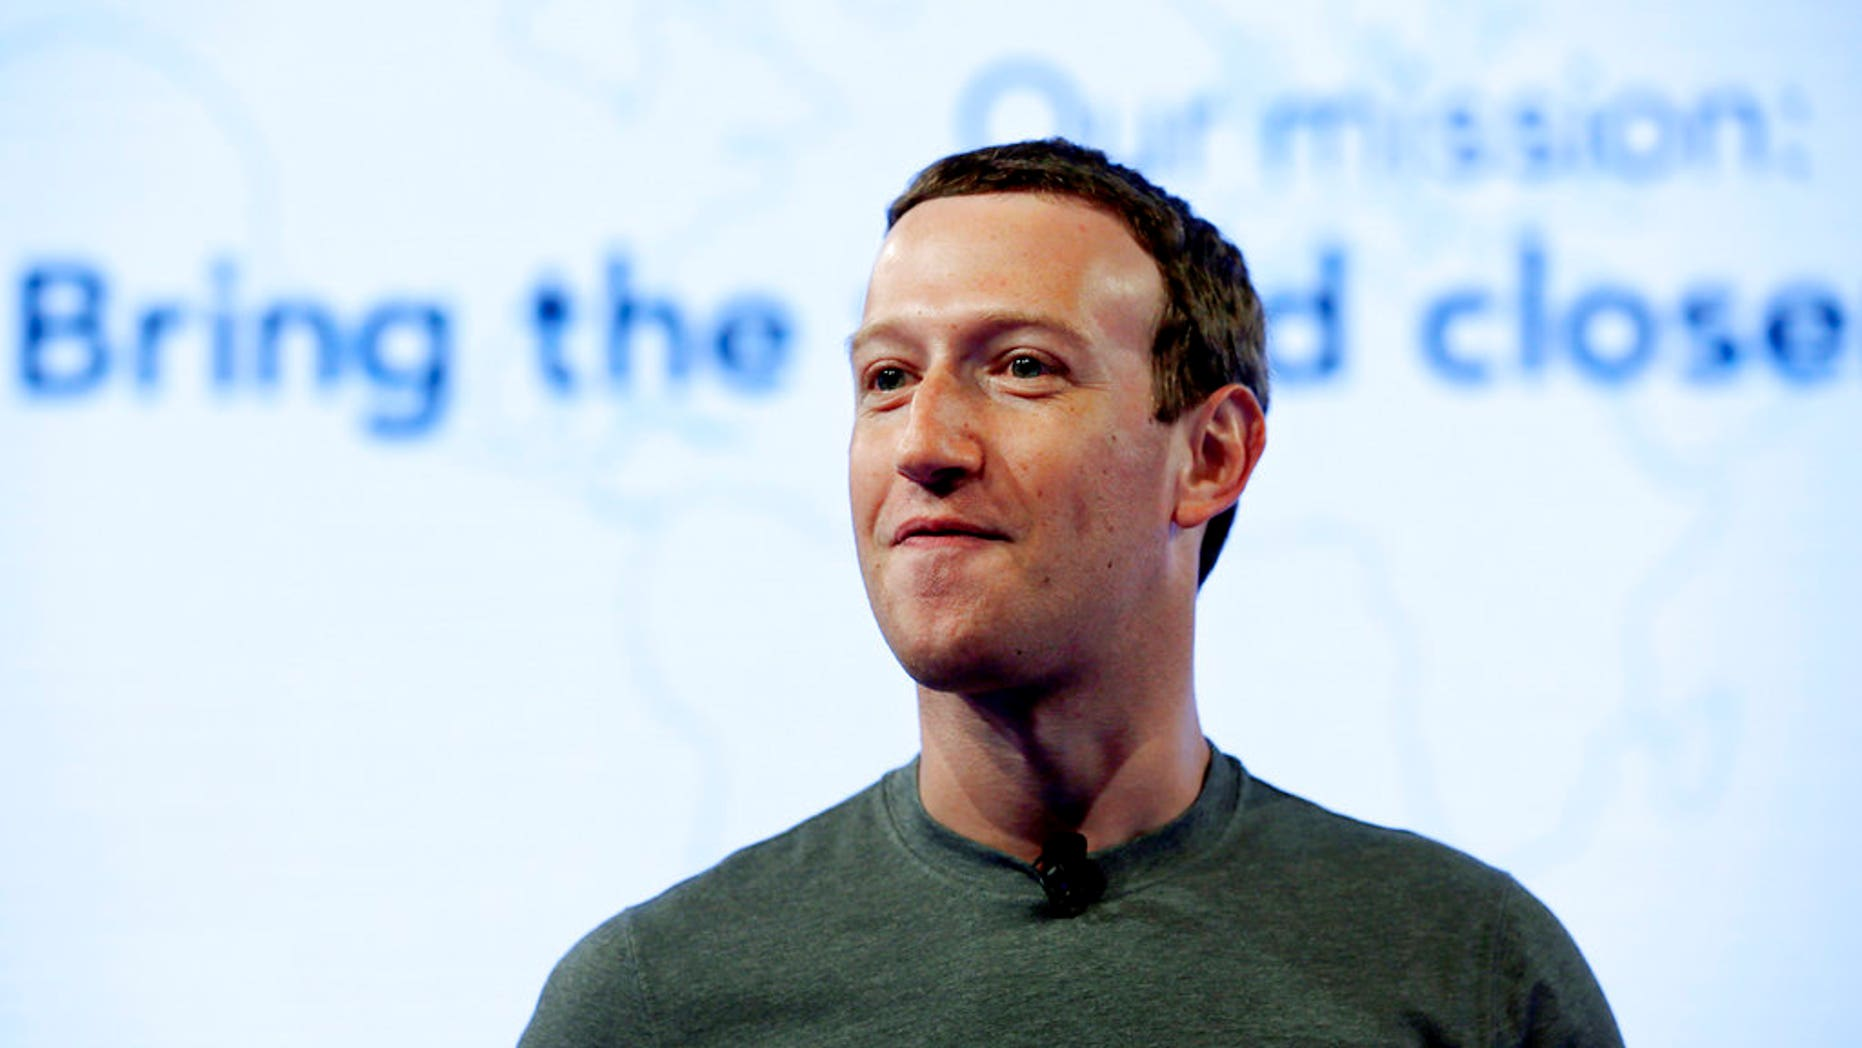 Of the $40.65 billion in revenue Facebook generated in 2017, $39.94 billion came from advertising, with the remaining $711 million coming from payments.